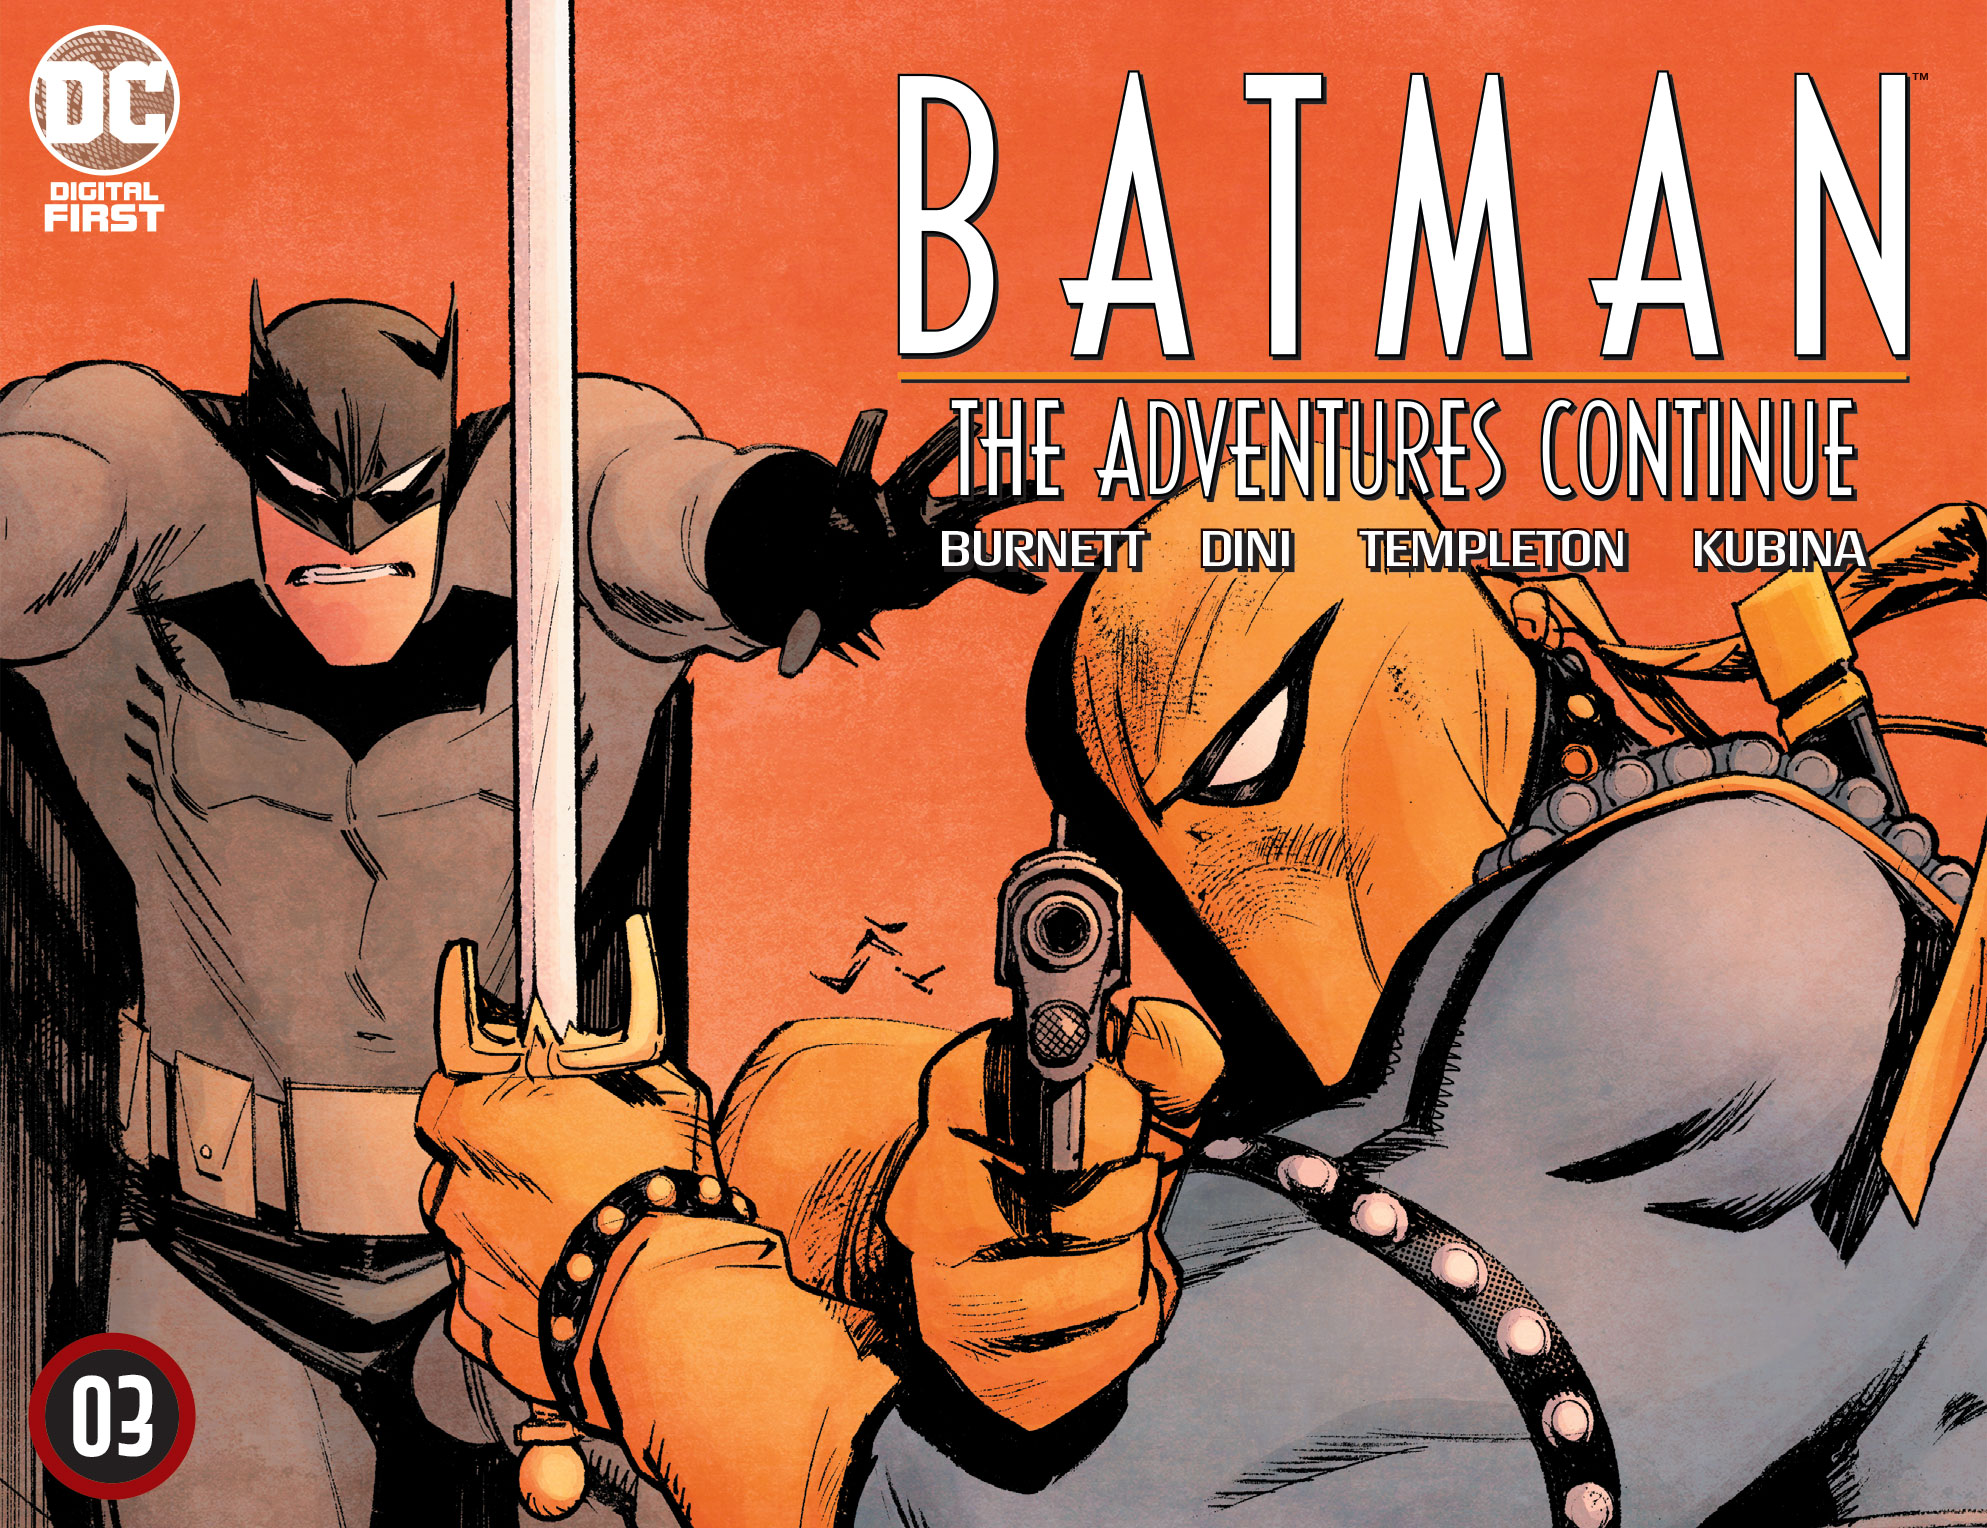 Batman: The Adventures Continue chapter three - cover by Sean Murphy